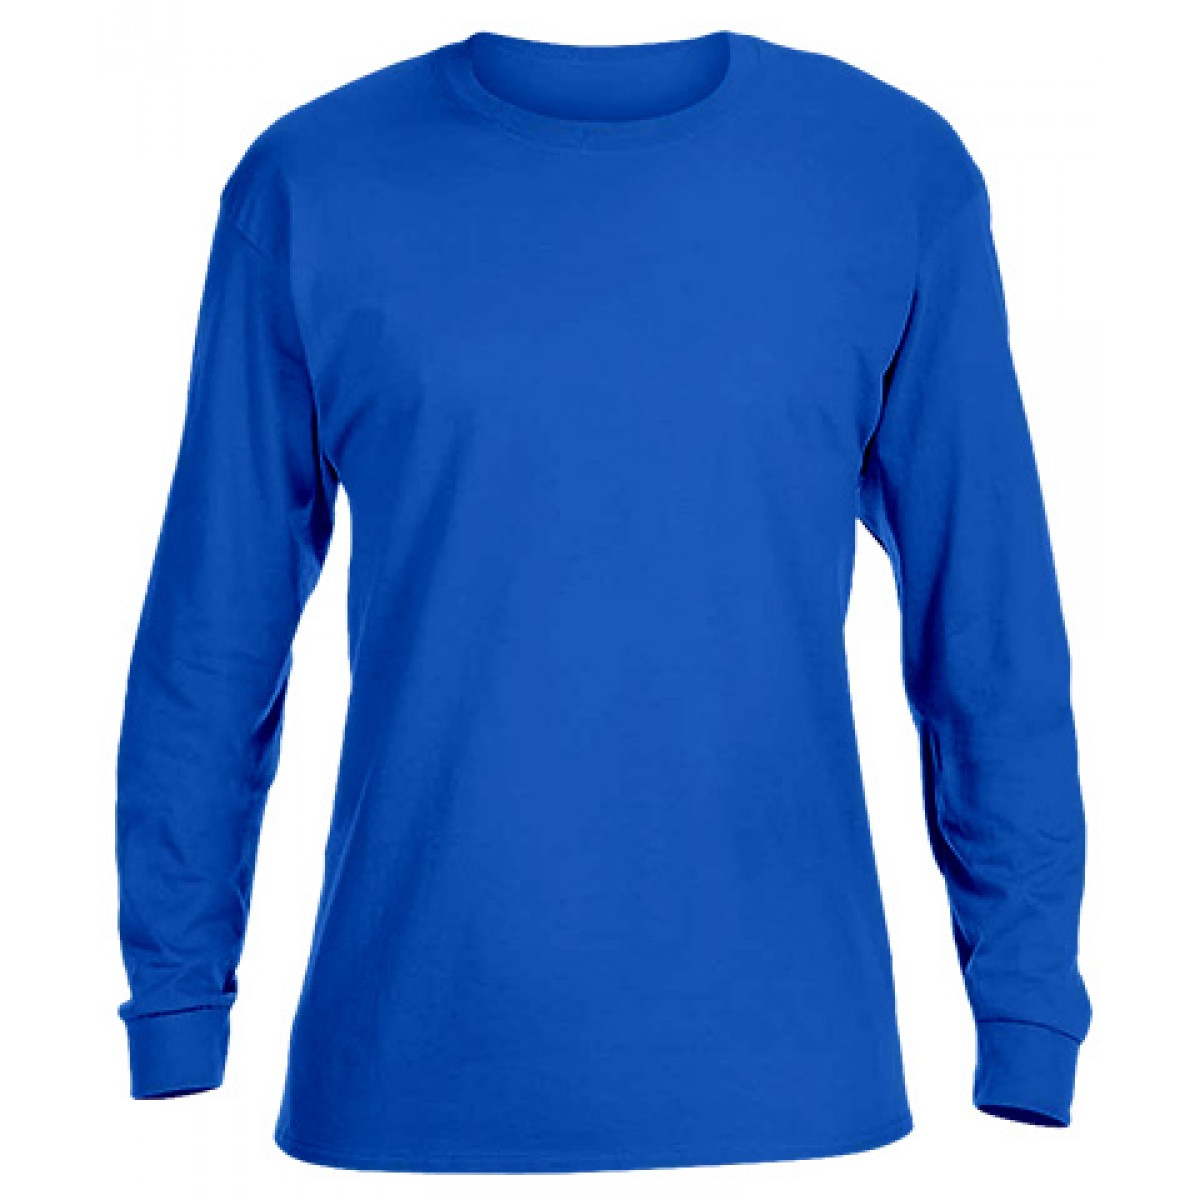 Basic Long Sleeve Crew Neck -Royal Blue-2XL